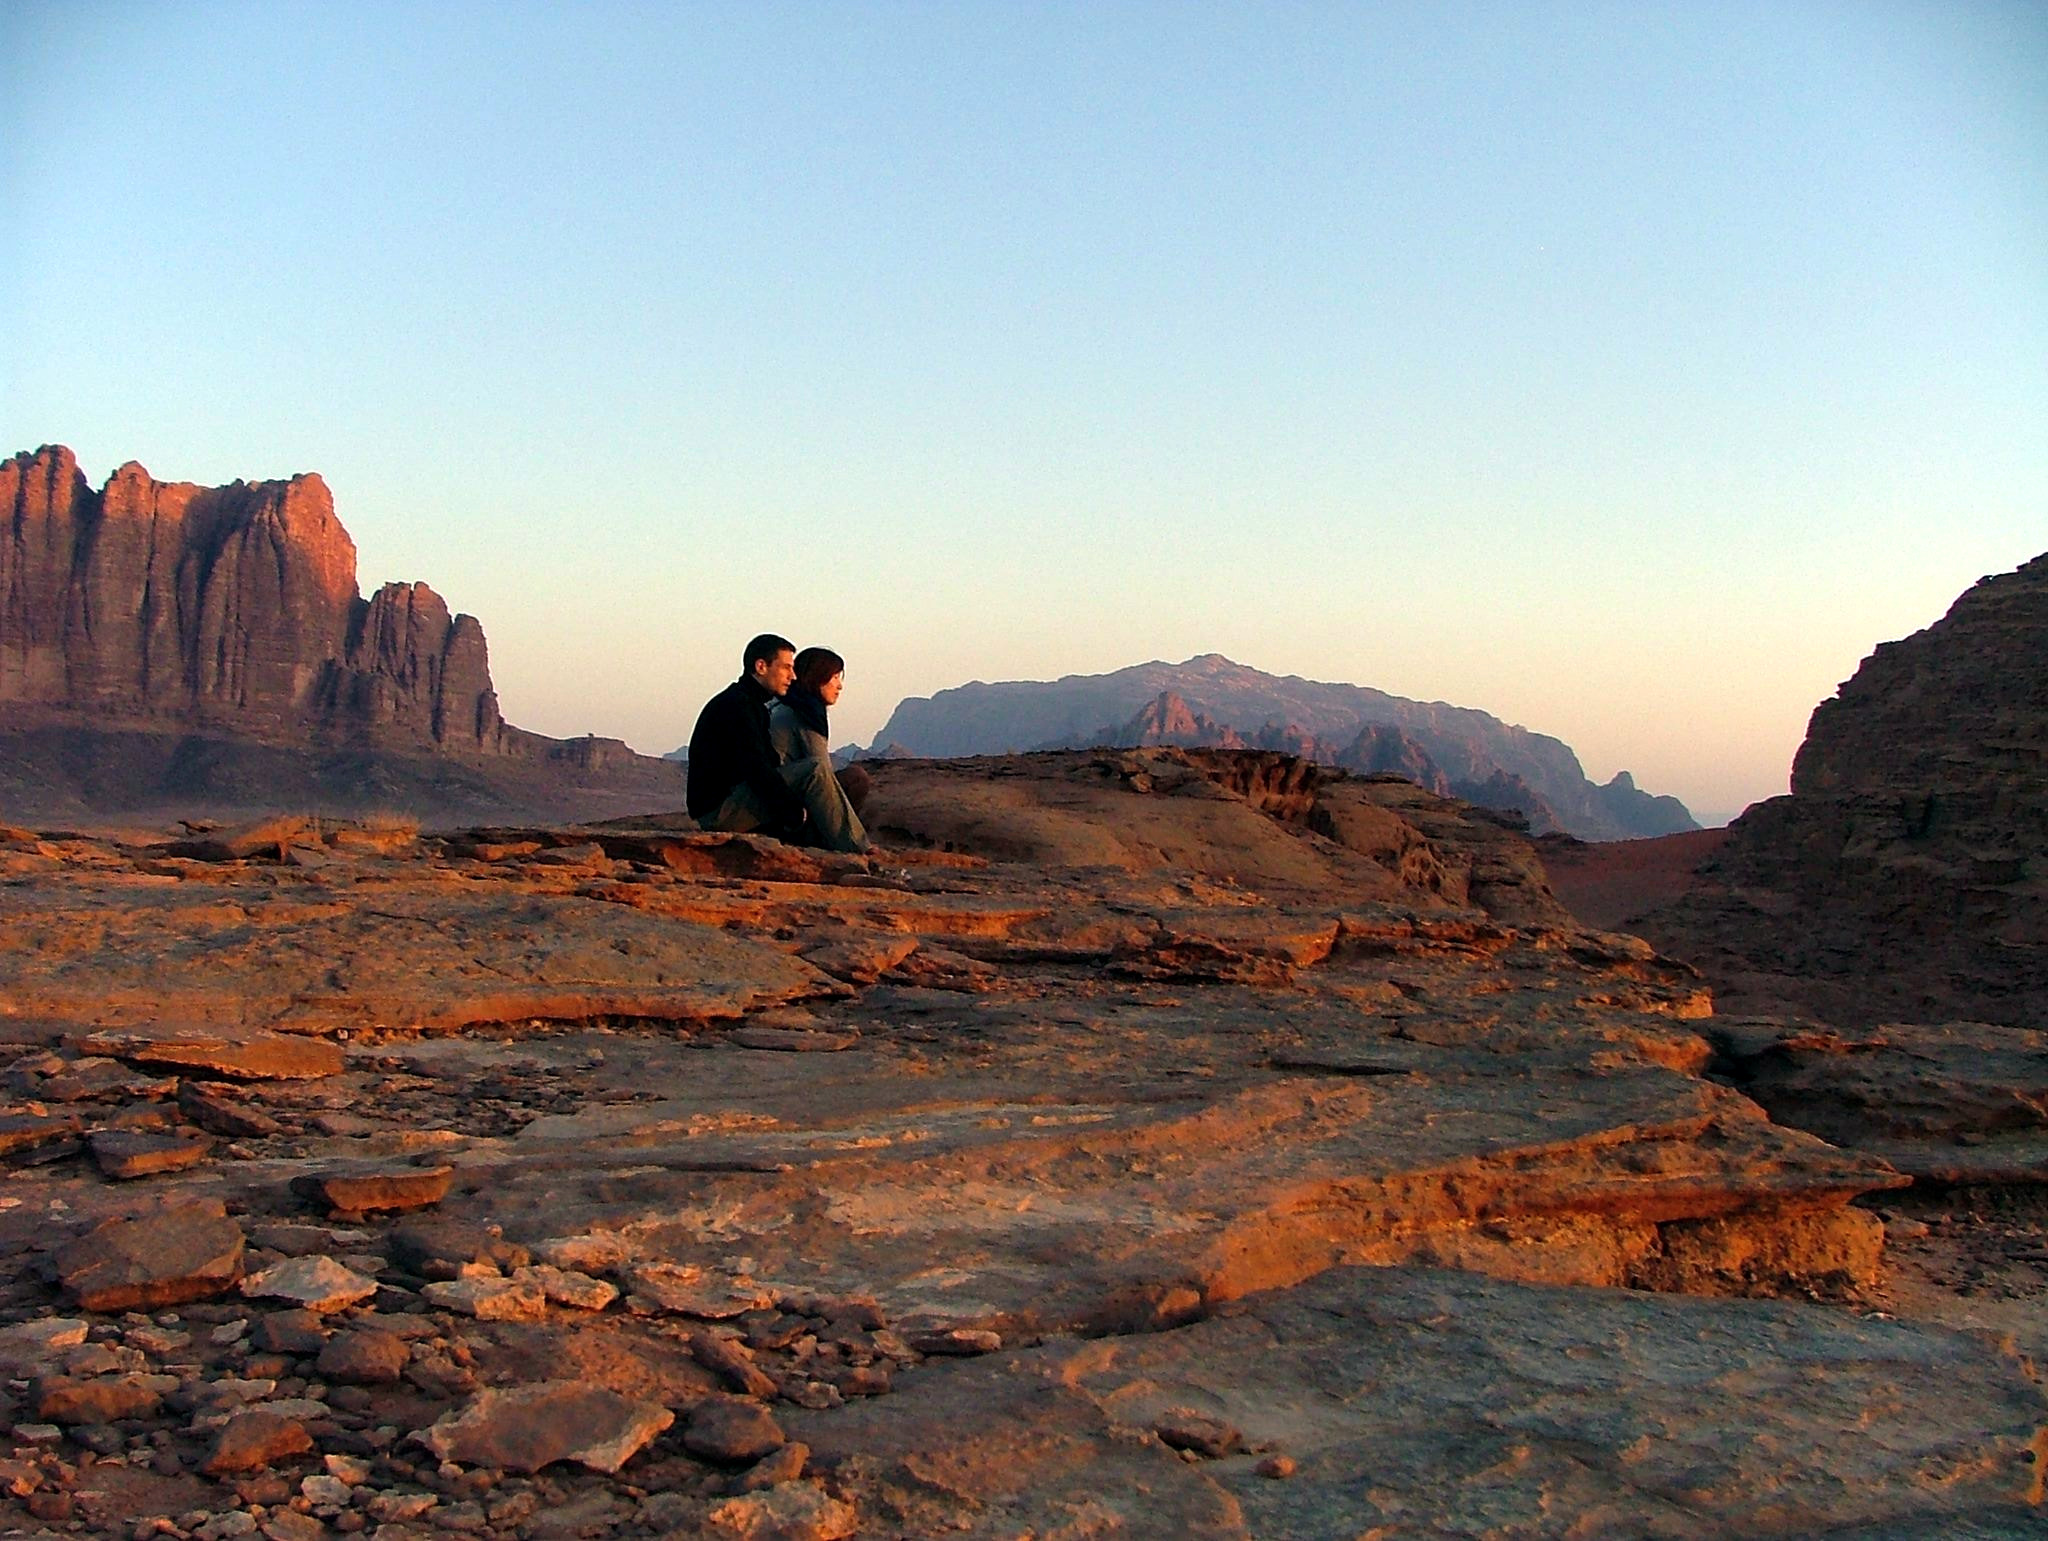 Sunrise in the Wadi Rum Jordan Rob Dyer The Real Japan